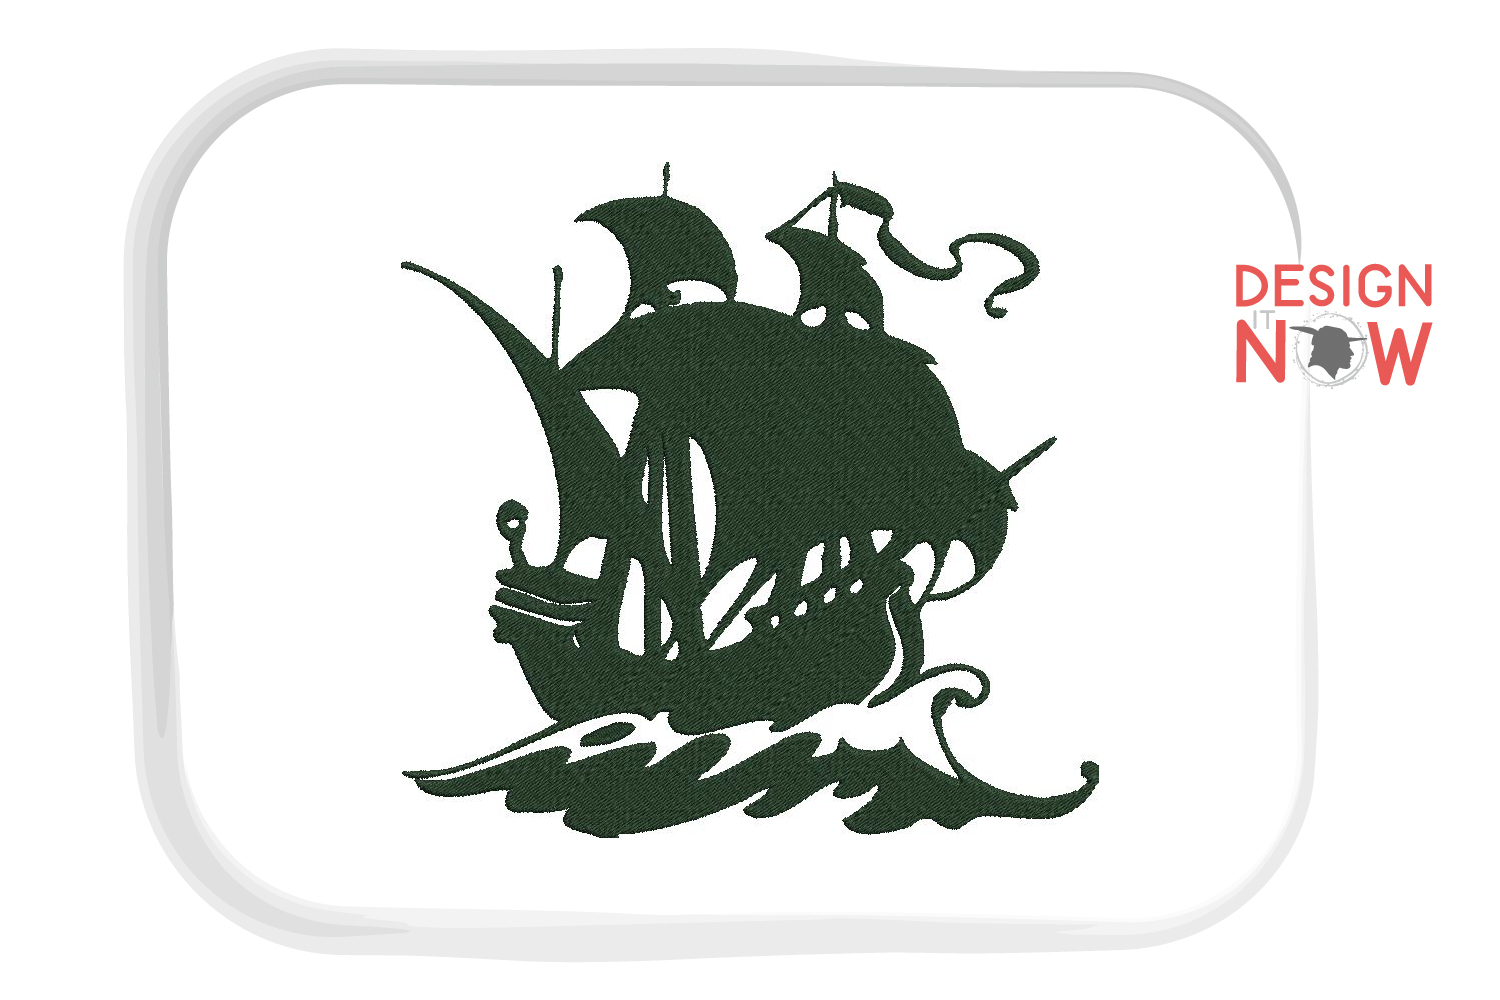 Boat Embroidery Design, Sailing Ship Embroidery Pattern, Sea example image 5